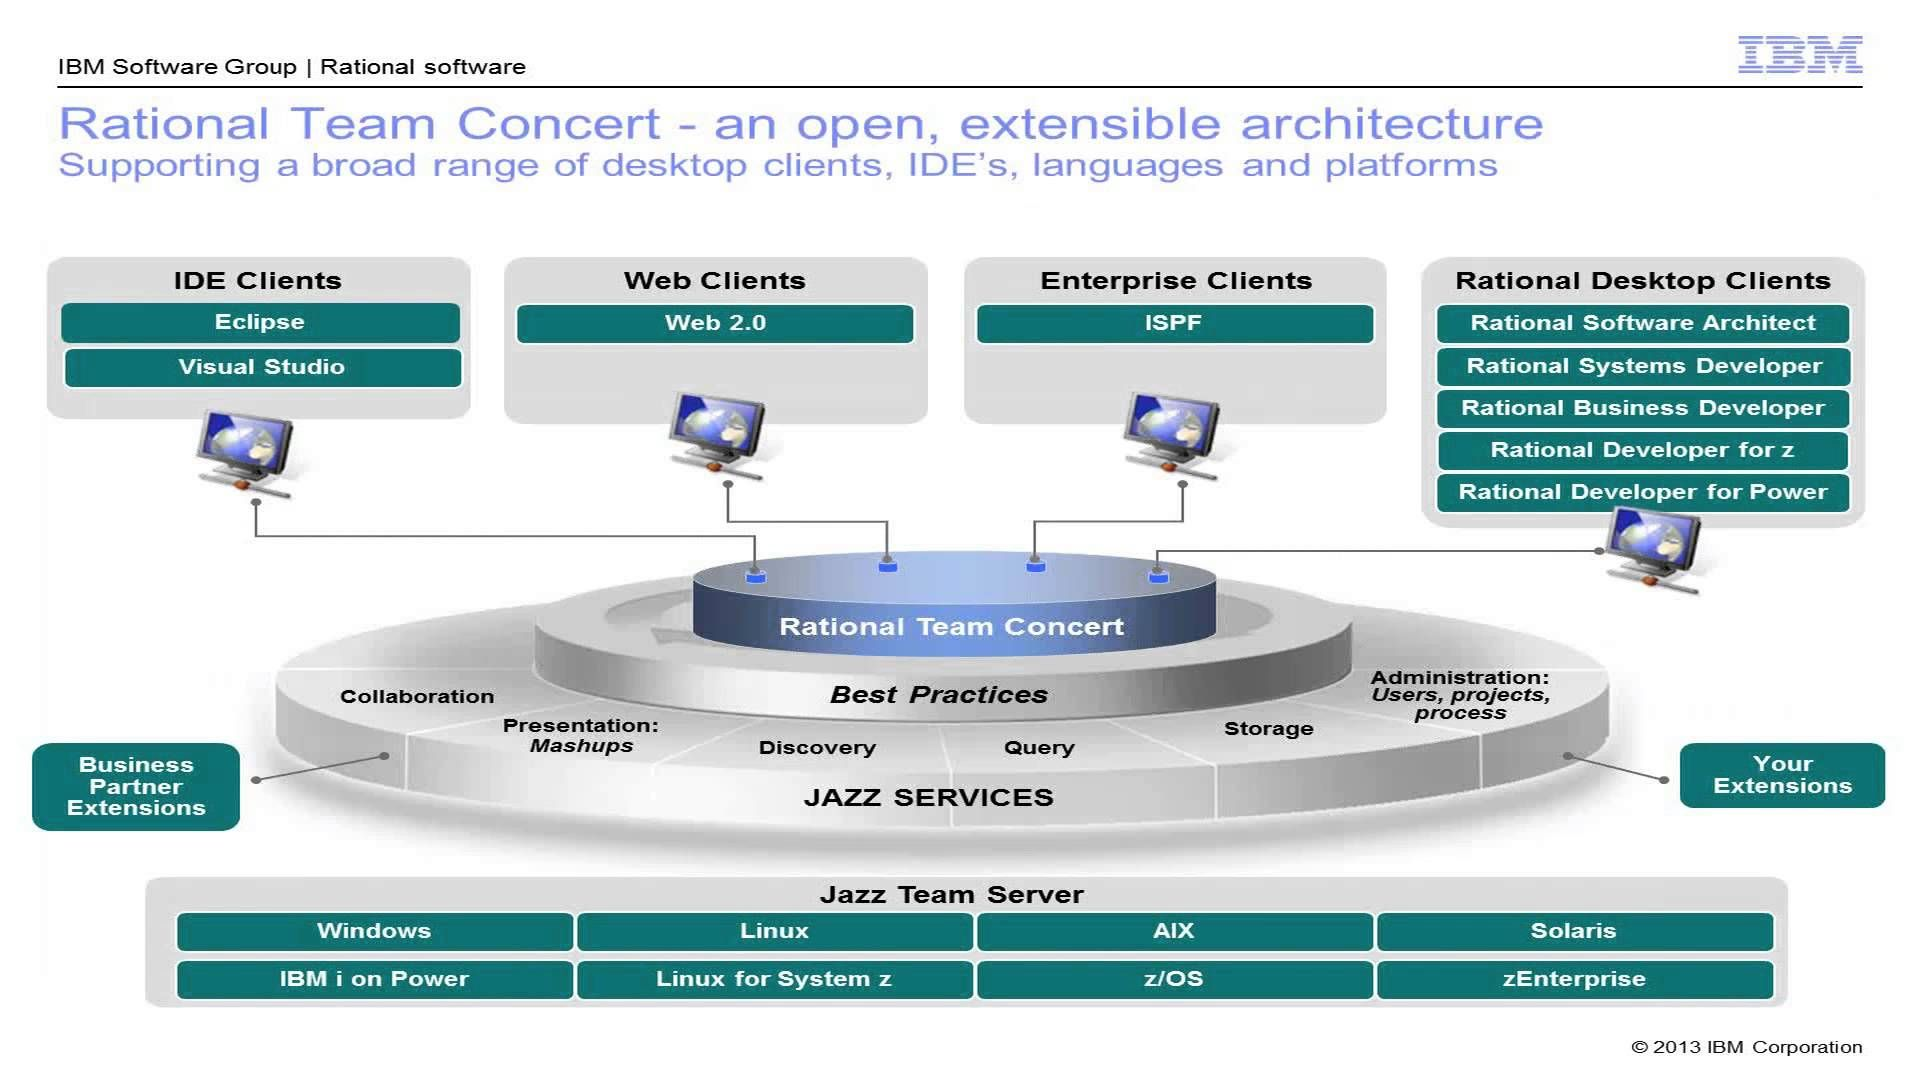 Introduction to ibm rational team concert concepts and processes introduction to ibm rational team concert concepts and processes part 1 baditri Gallery